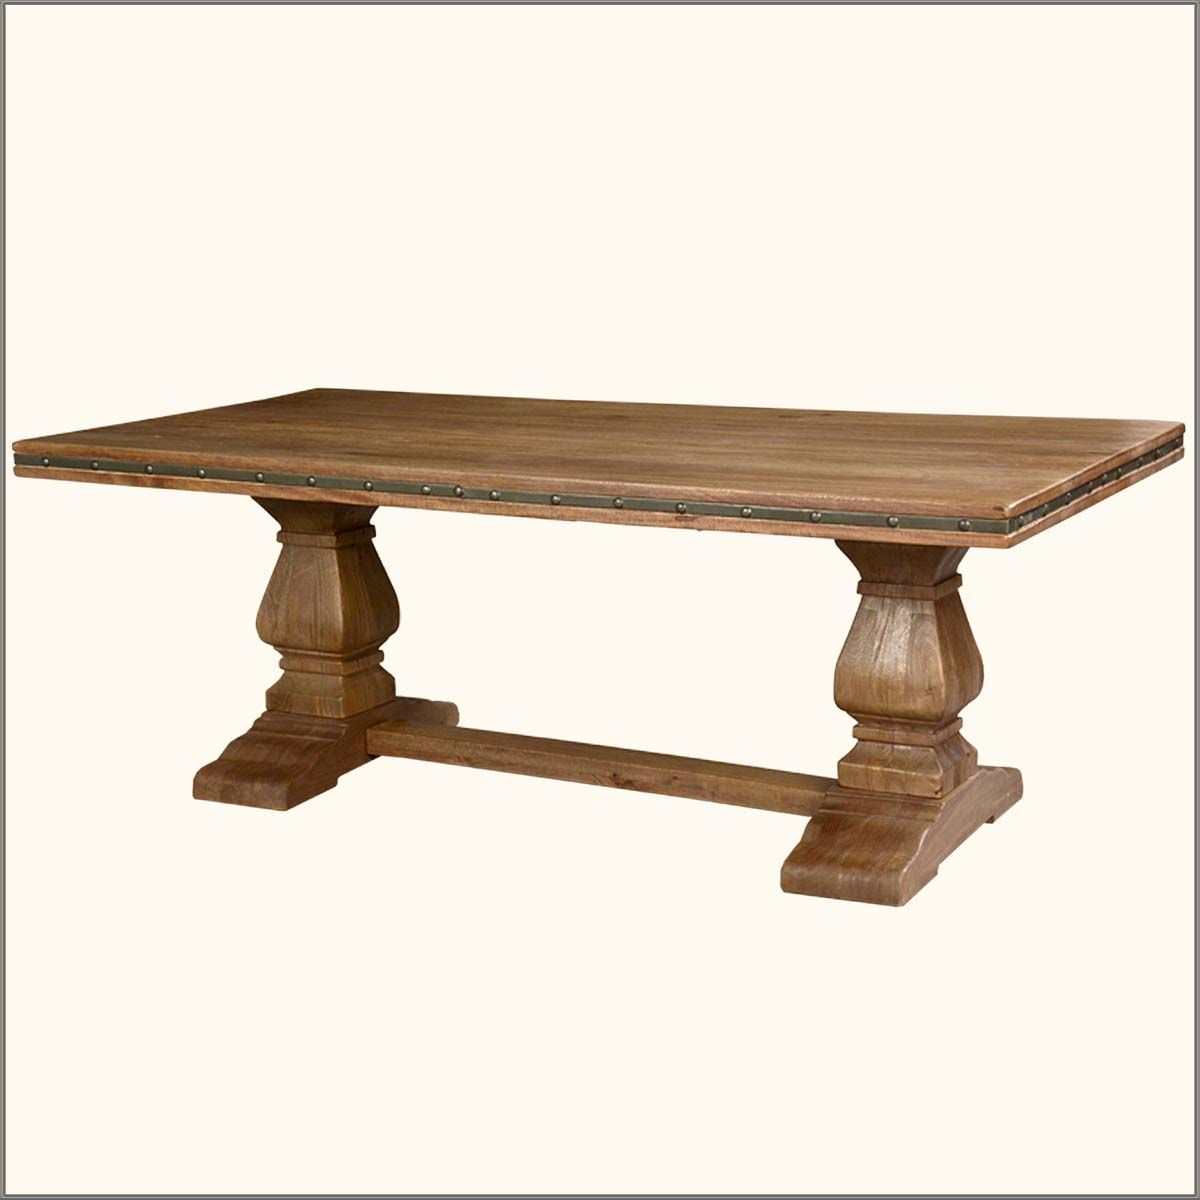 Wood Trestle Base | ... Tables Rustic Solid Wood Trestle Pedestal Base  Harvest Dining Table